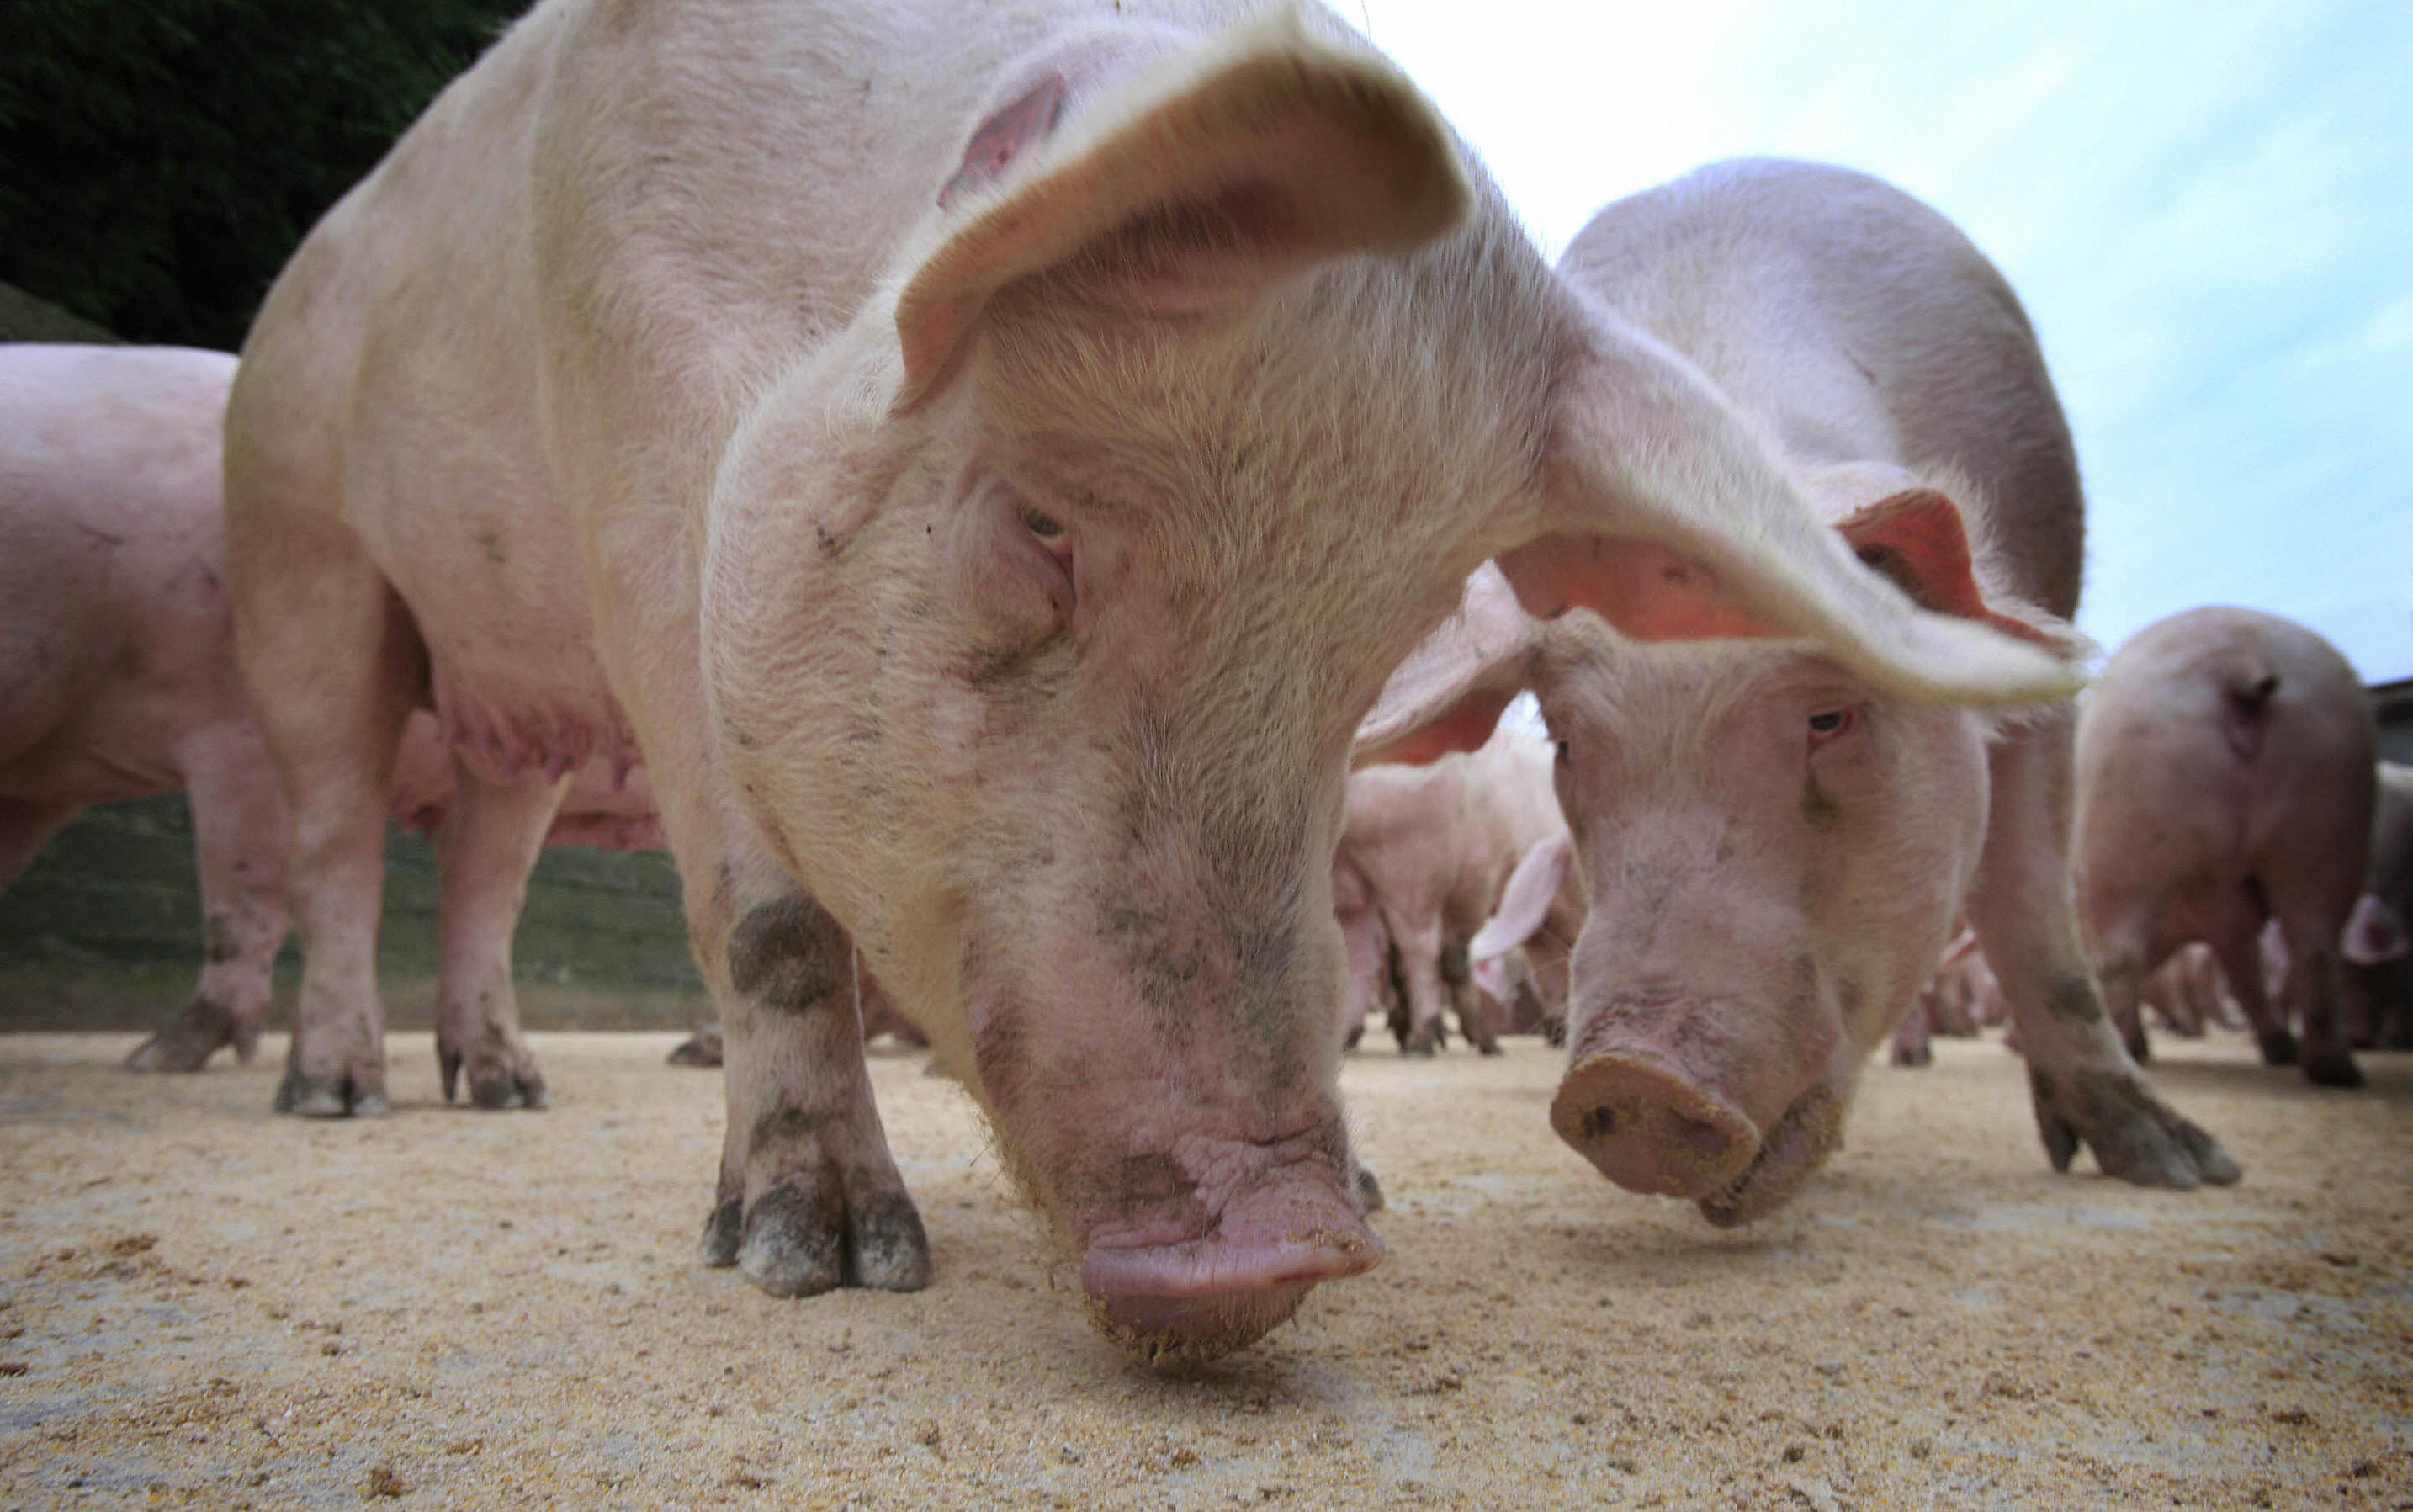 Pigs are pictured eating at a farm in Northern Ireland, on December 8, 2008. (PETER MUHLY/AFP/Getty Images)